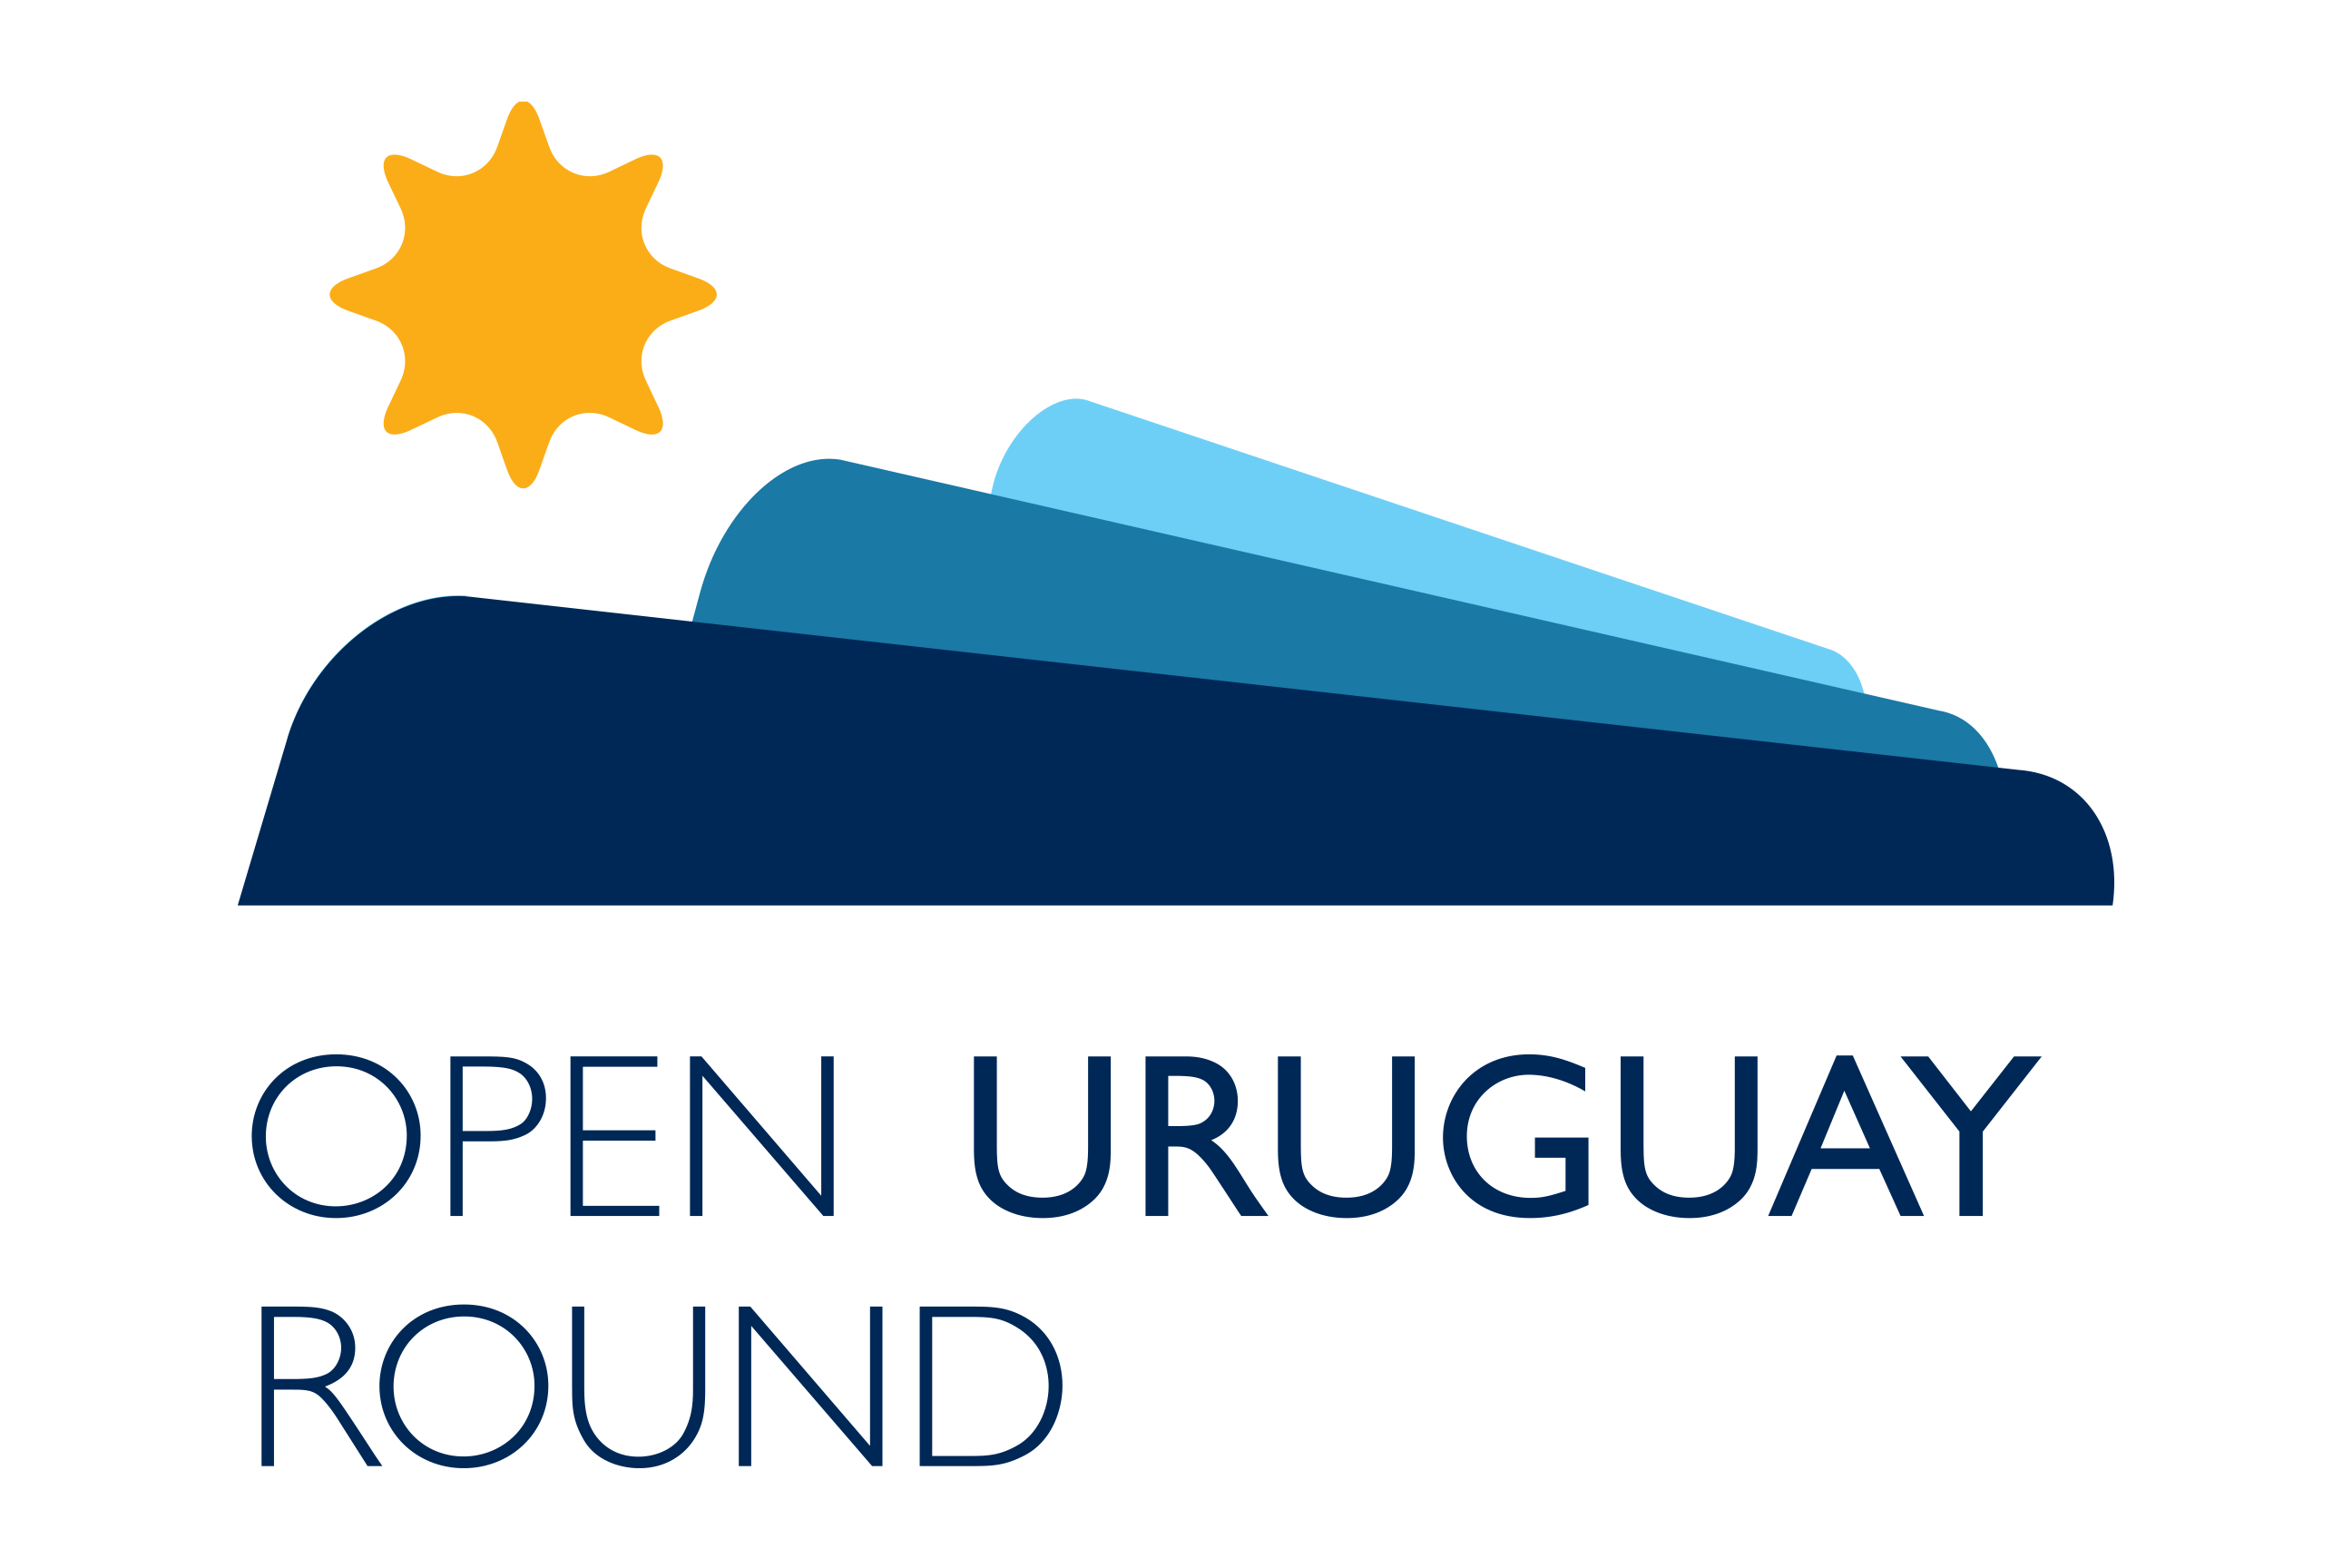 Open Uruguay Round Officially Launched